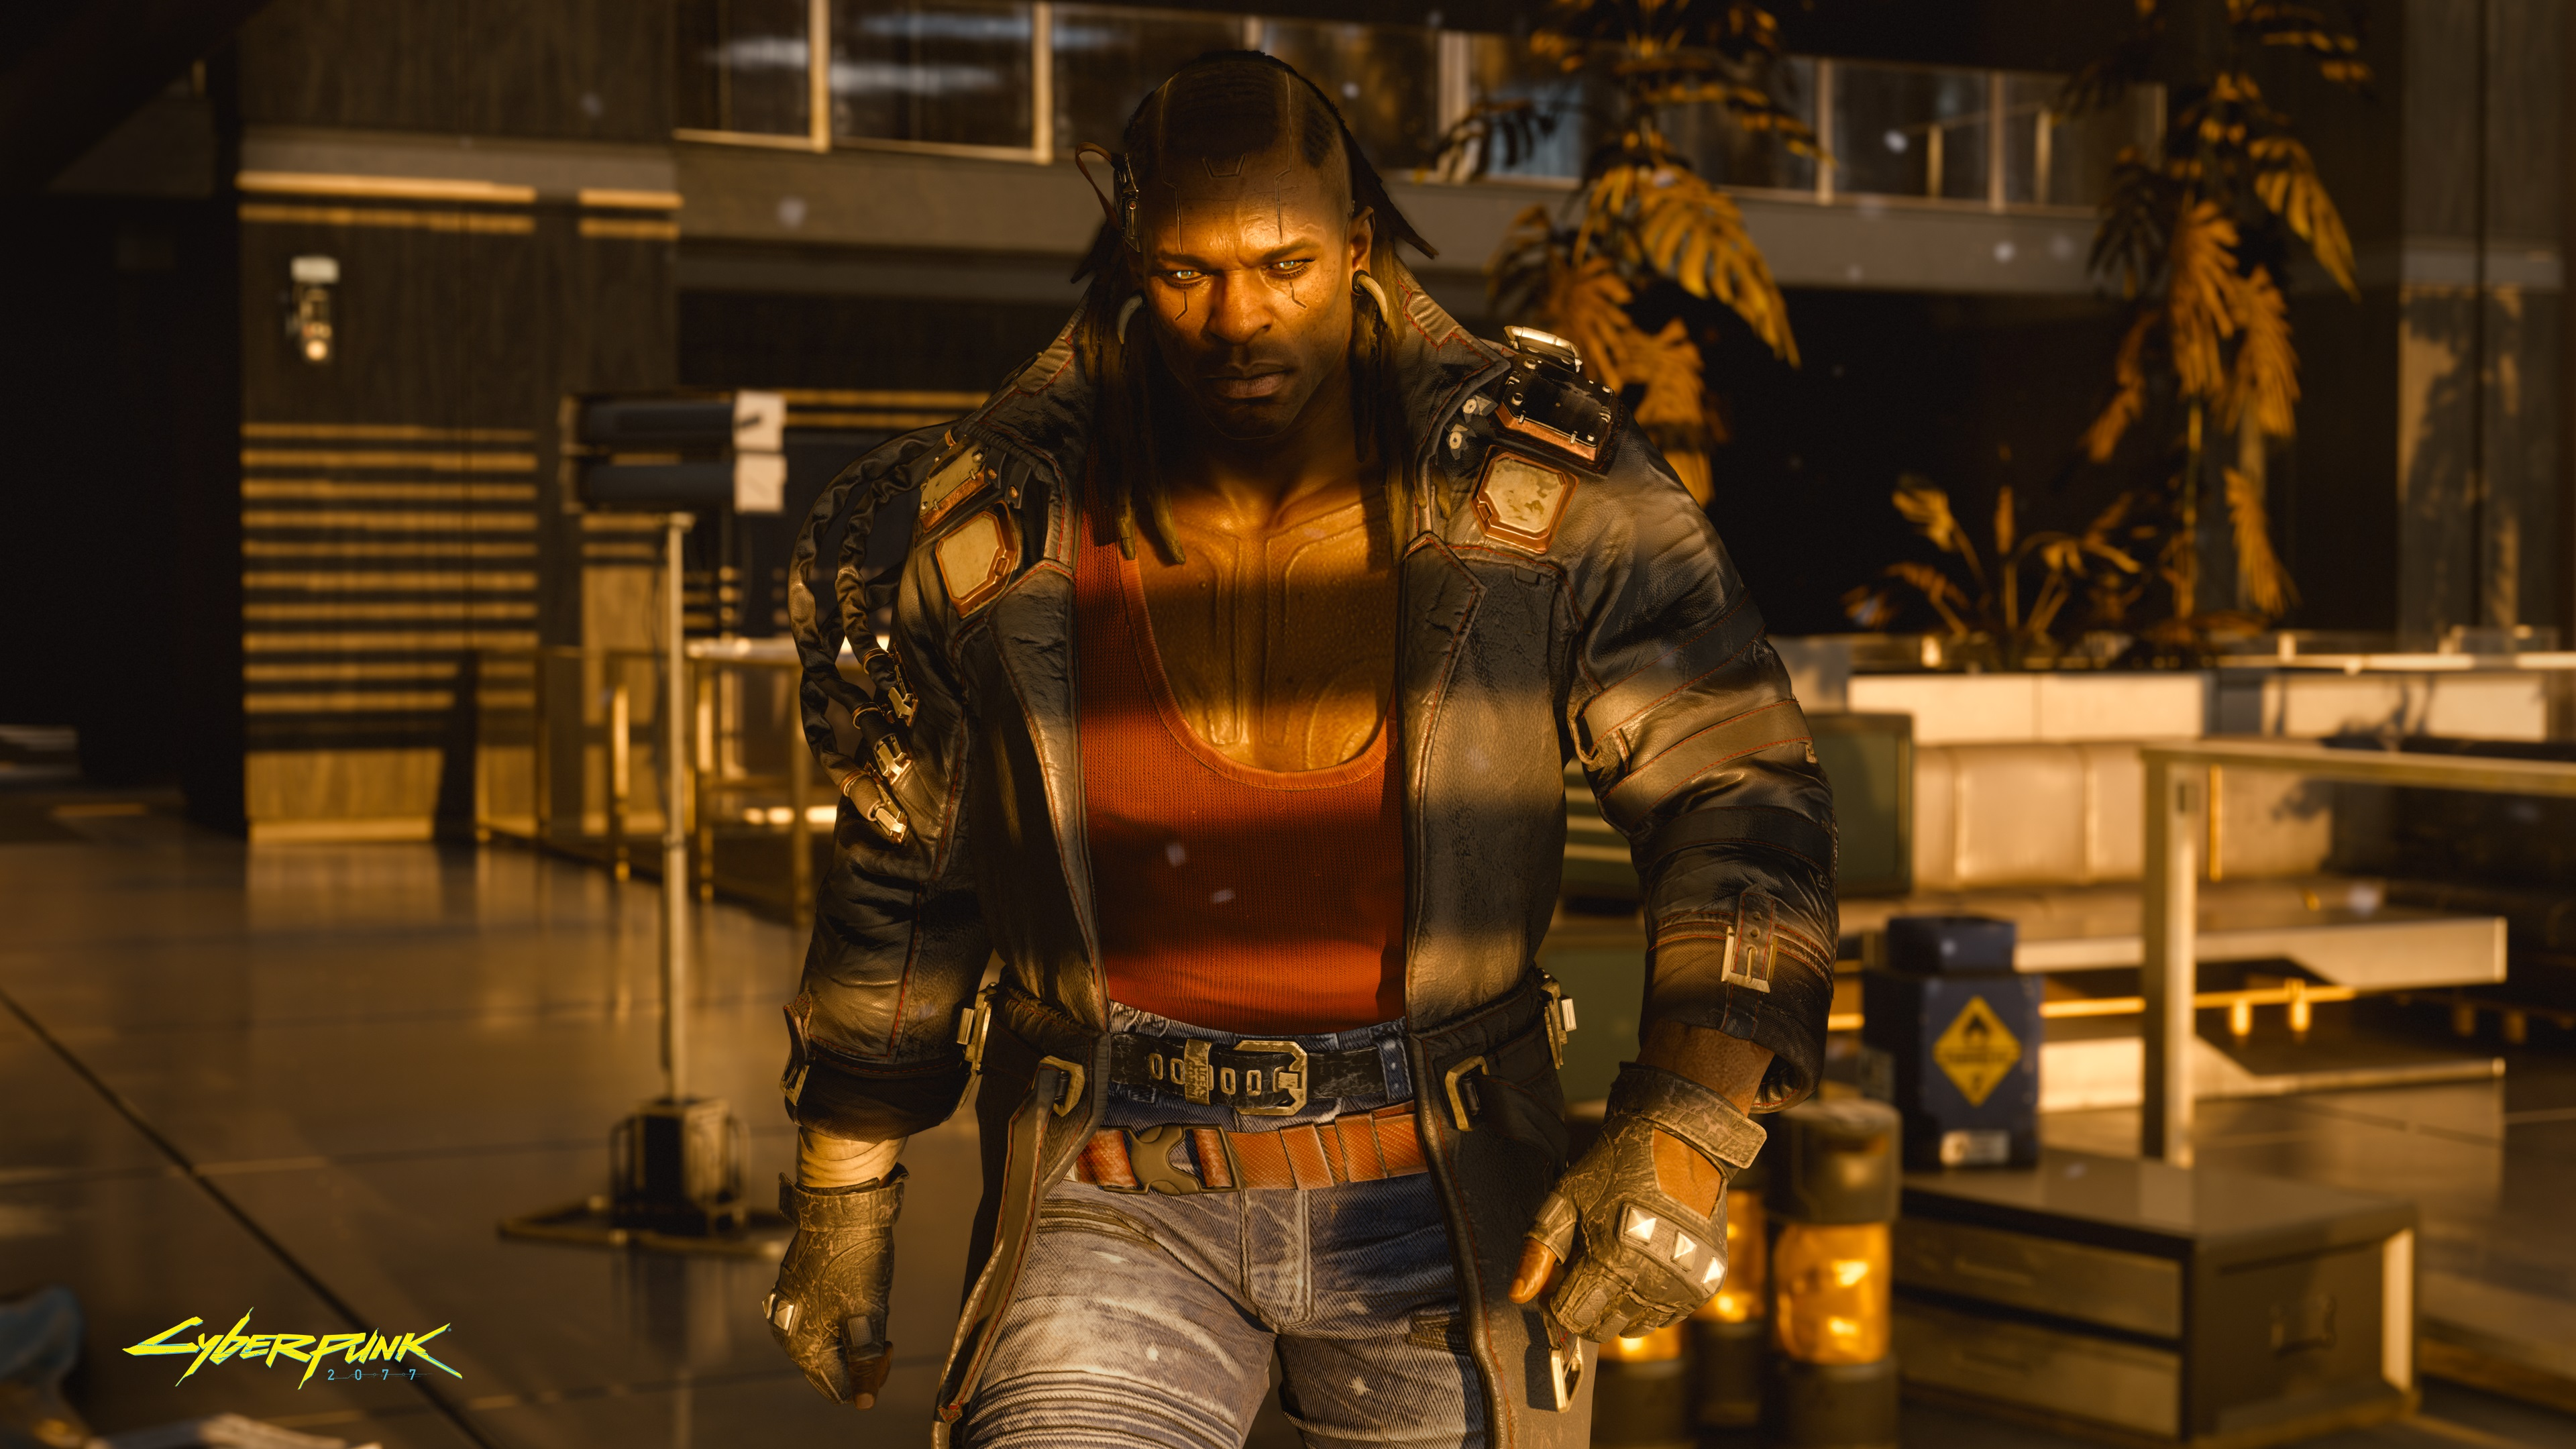 Cyberpunk 2077 will hit GeForce Now the day it's released